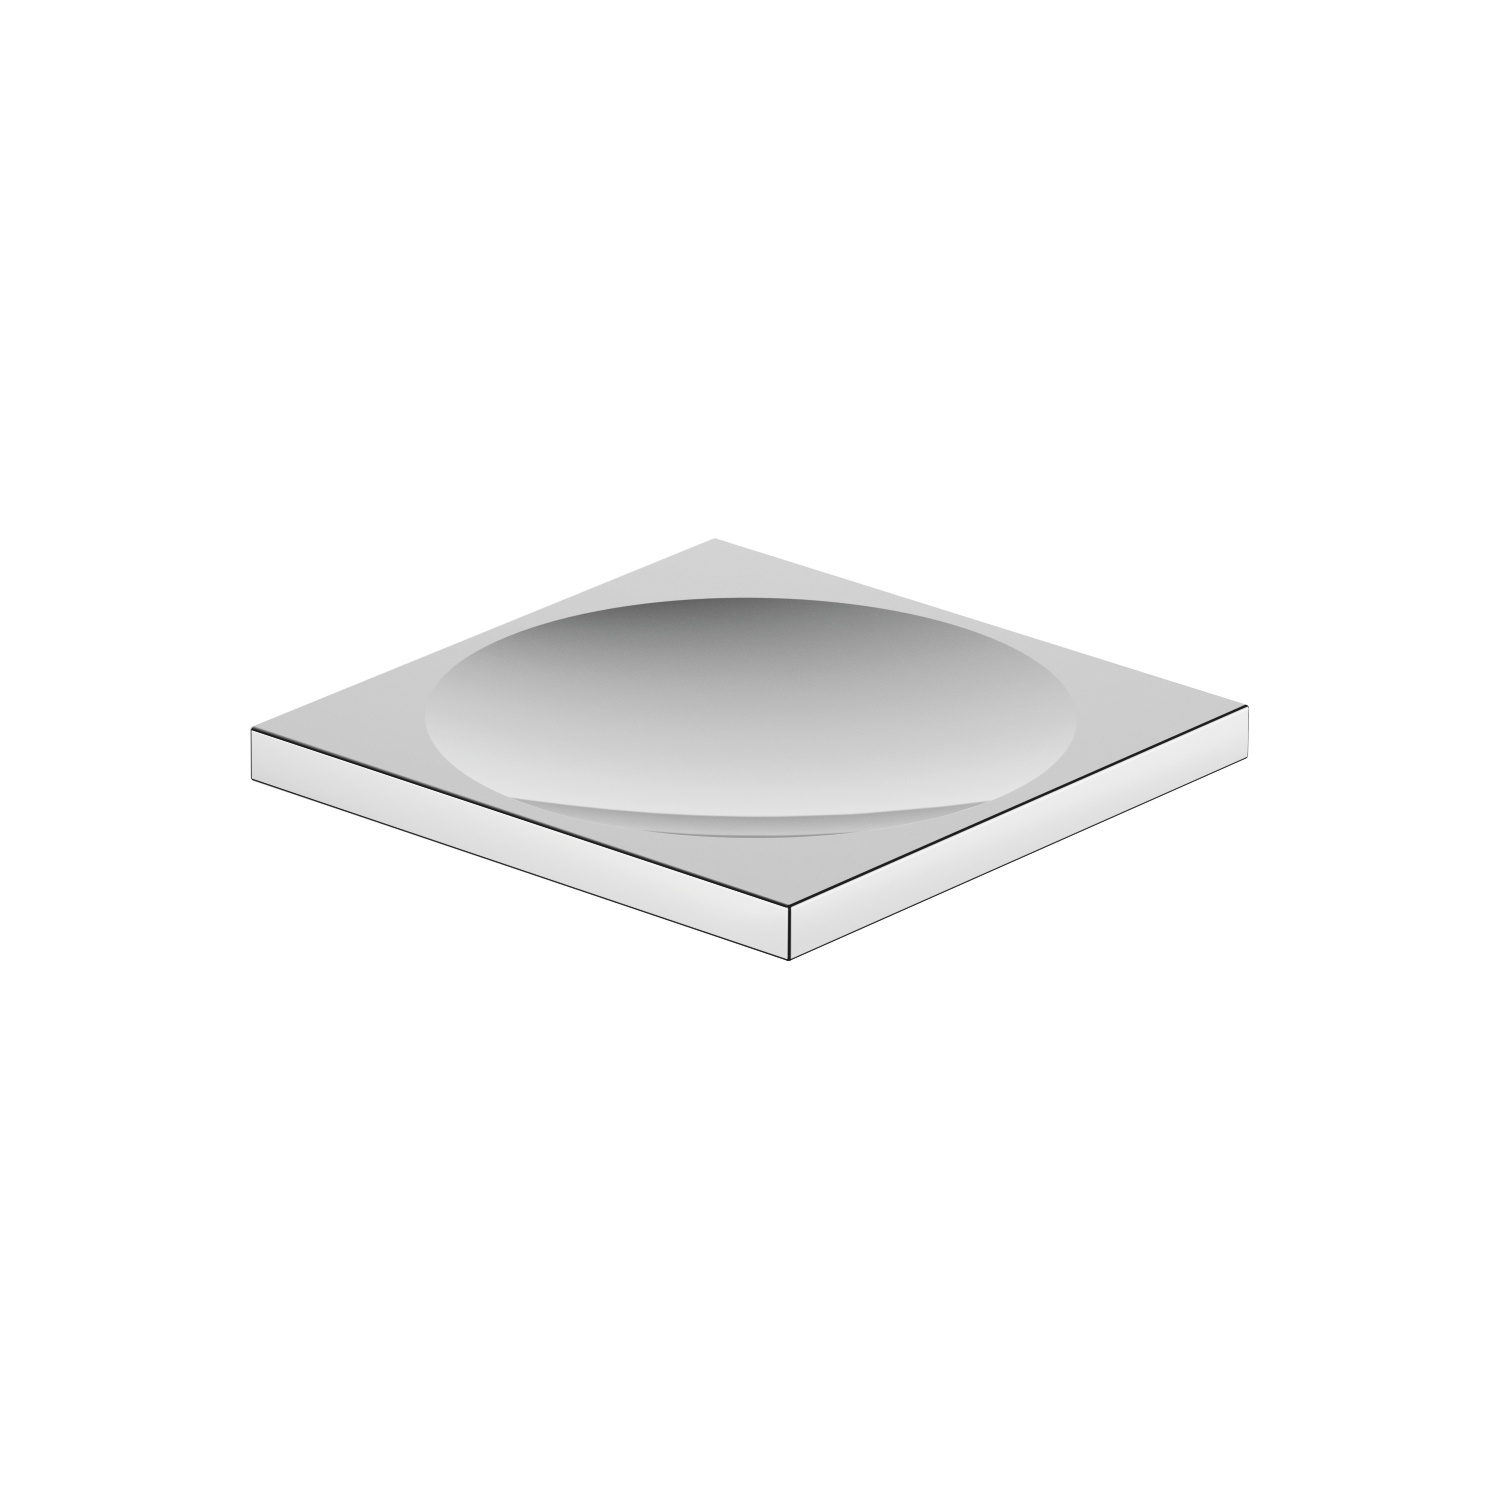 Soap dish free-standing model - polished chrome